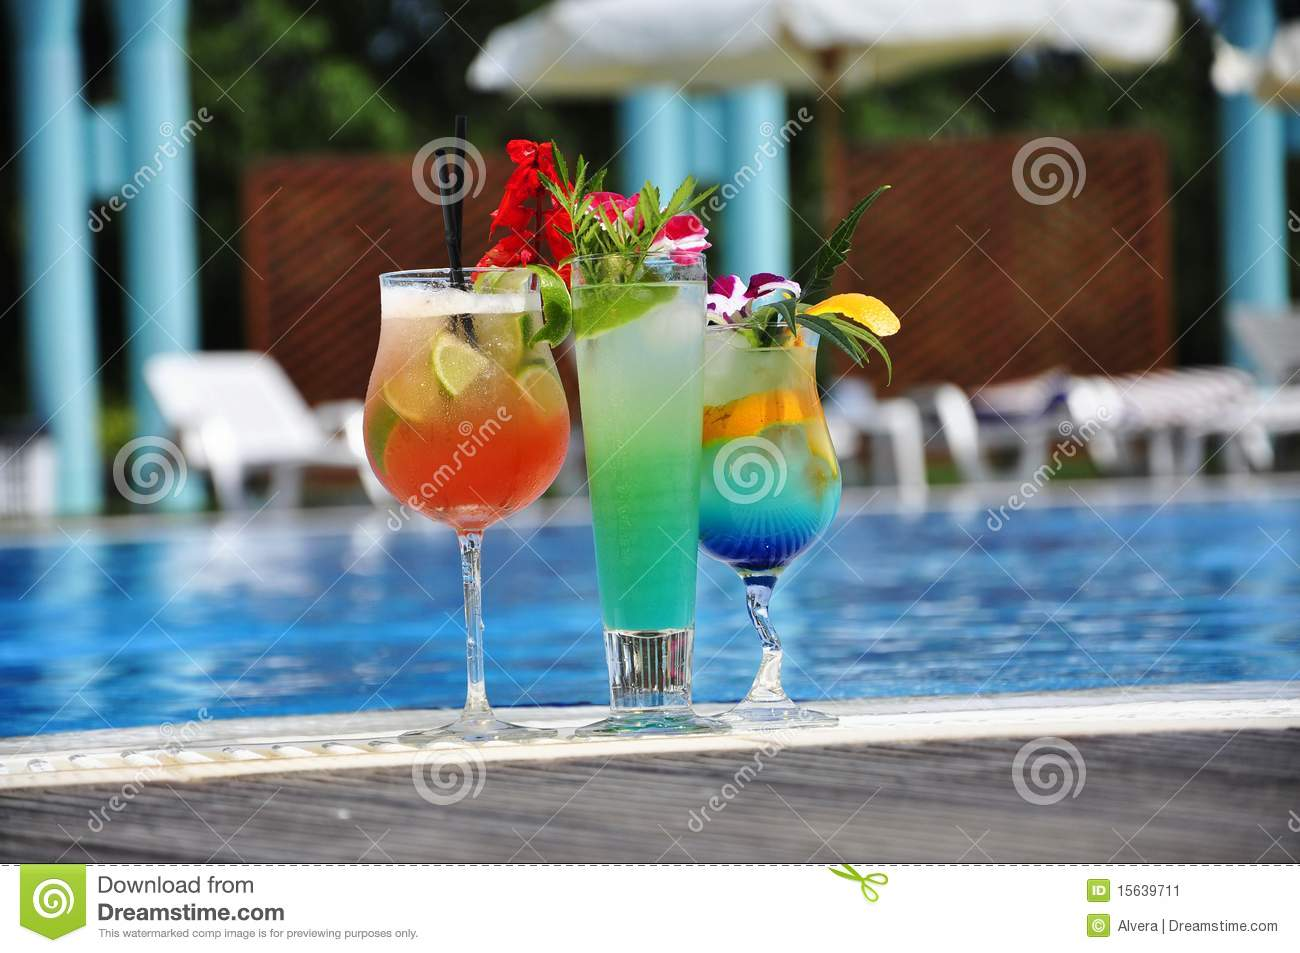 Stock Image Cocktail At The Edge Of Pool Image 15639711